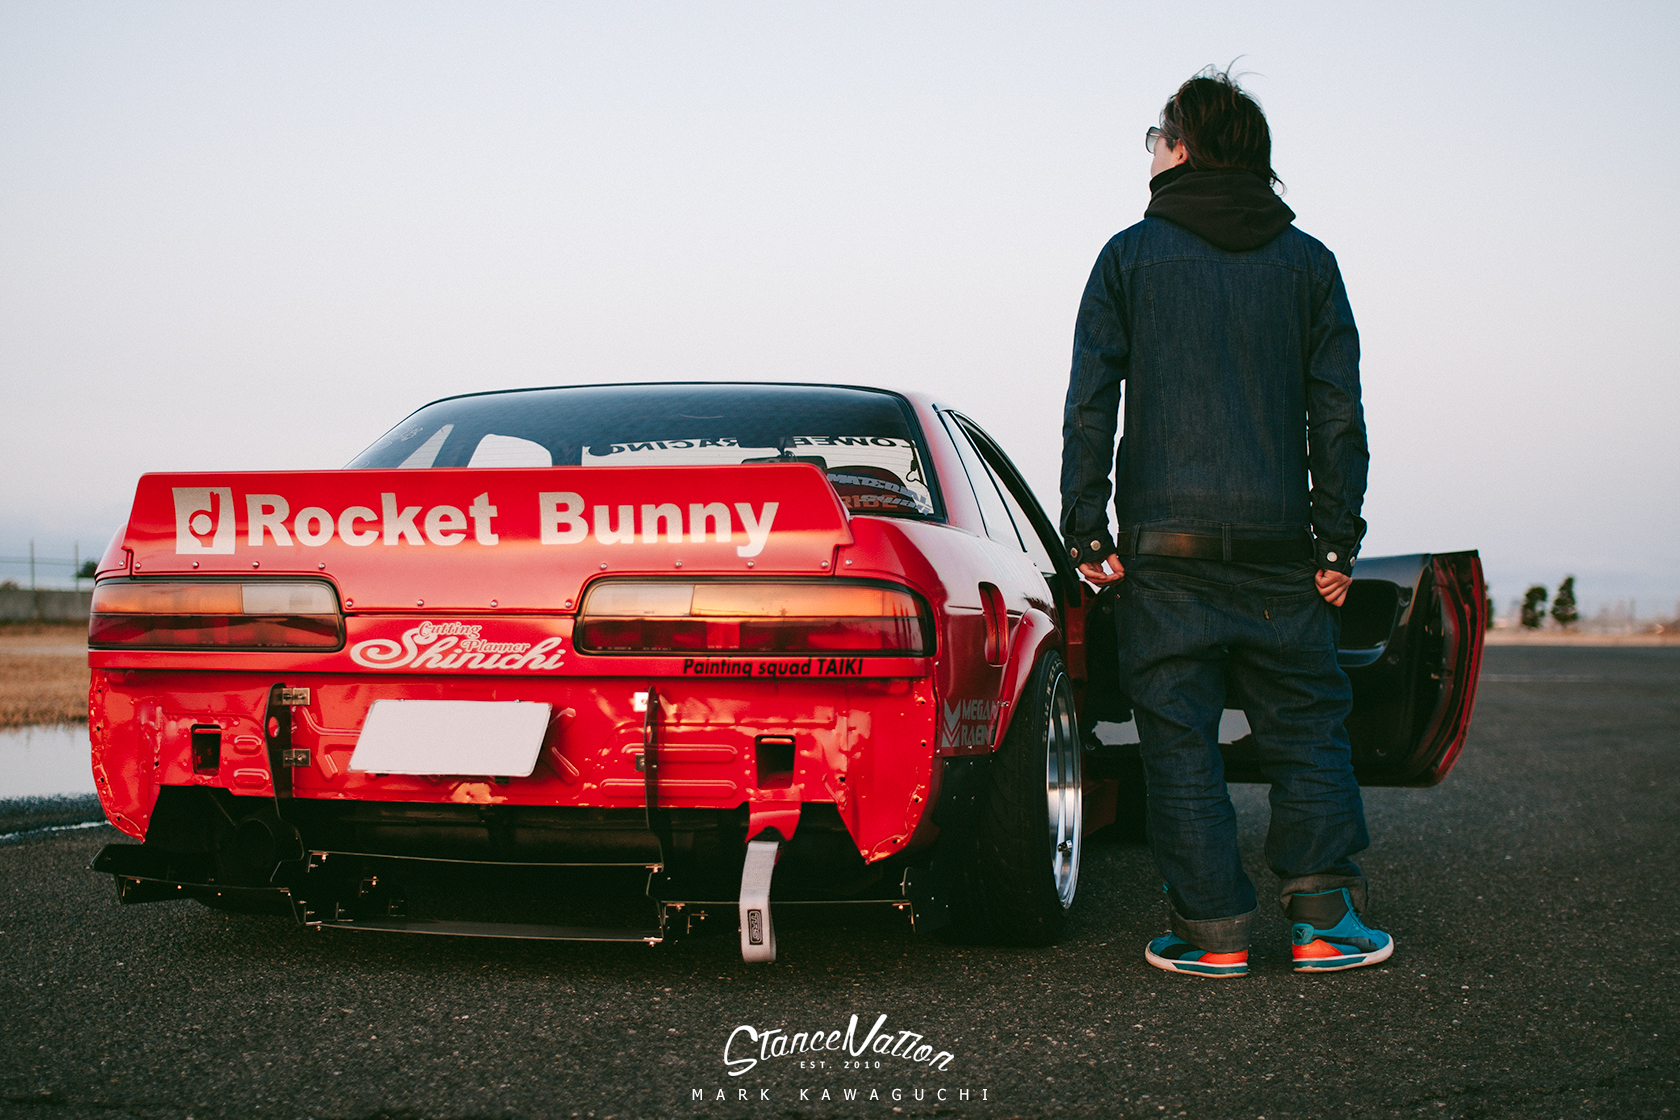 rocket-bunny-nissan-japan-6666-customs-S13-8""